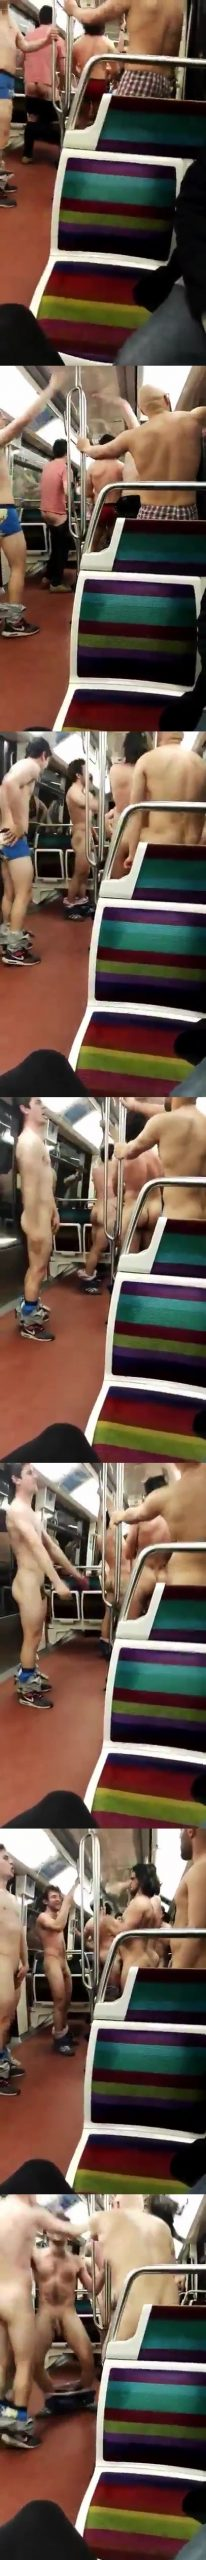 rugbymen partying naked on the metro